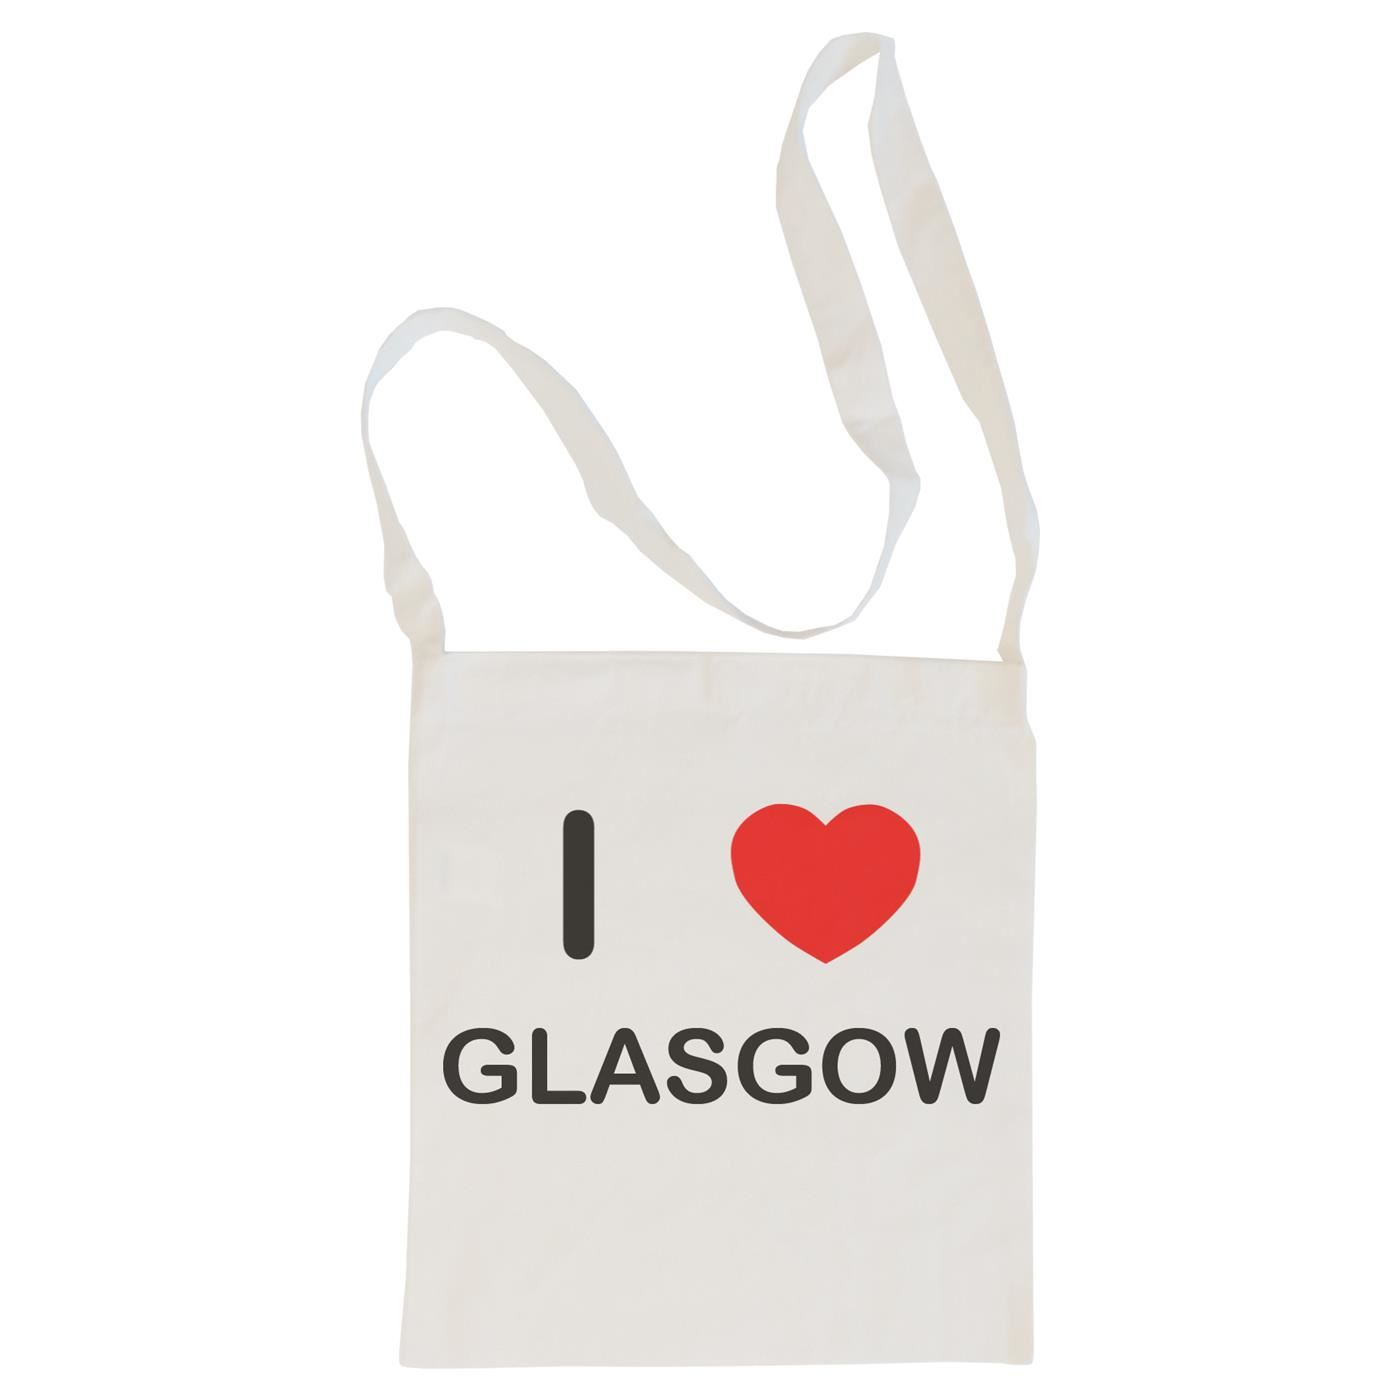 I Love Glasgow - Cotton Bag | Size choice Tote, Shopper or Sling